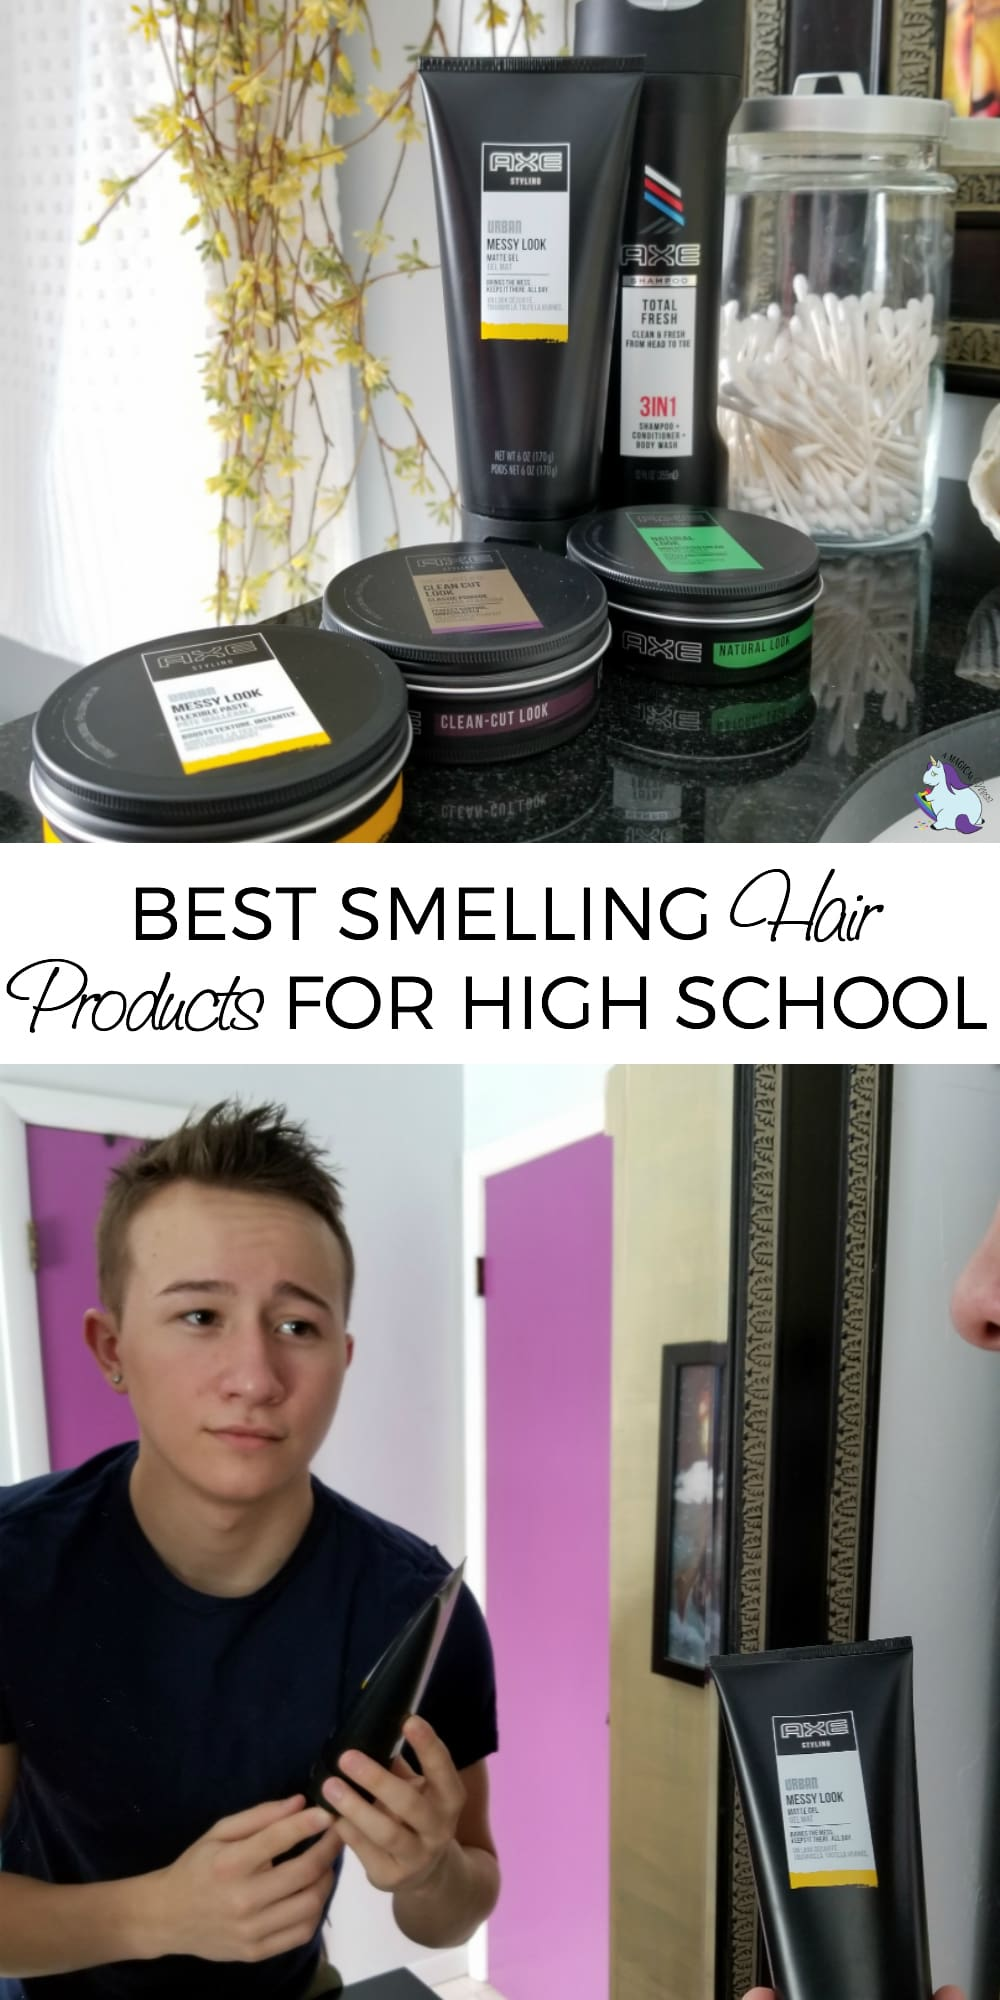 Good smelling hair is so important--especially for high school boys! #AXEtotalpackage #hair #products #savings #boys #teens